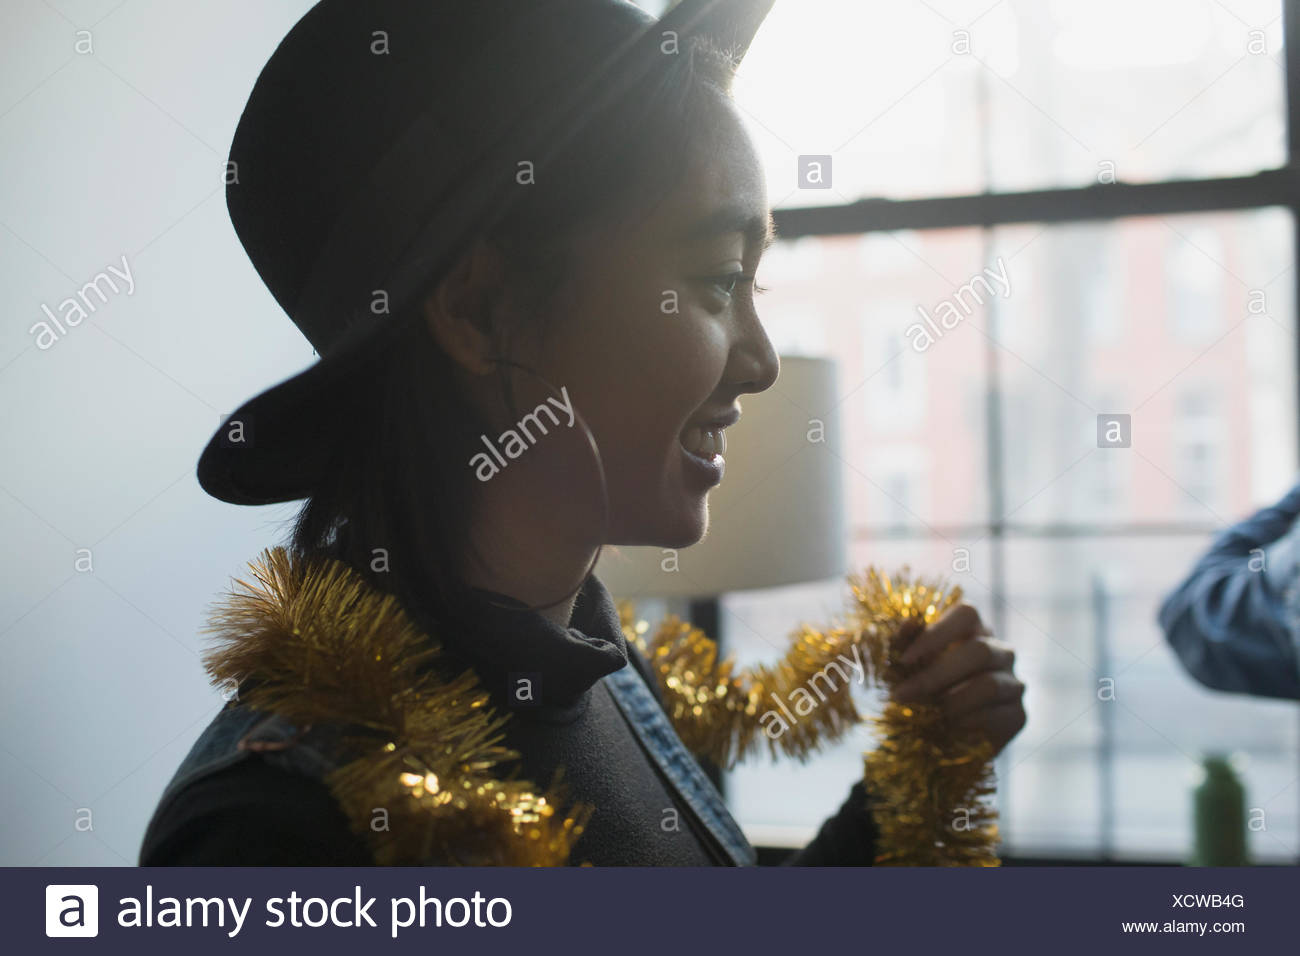 A young woman wearing tinsel - Stock Image